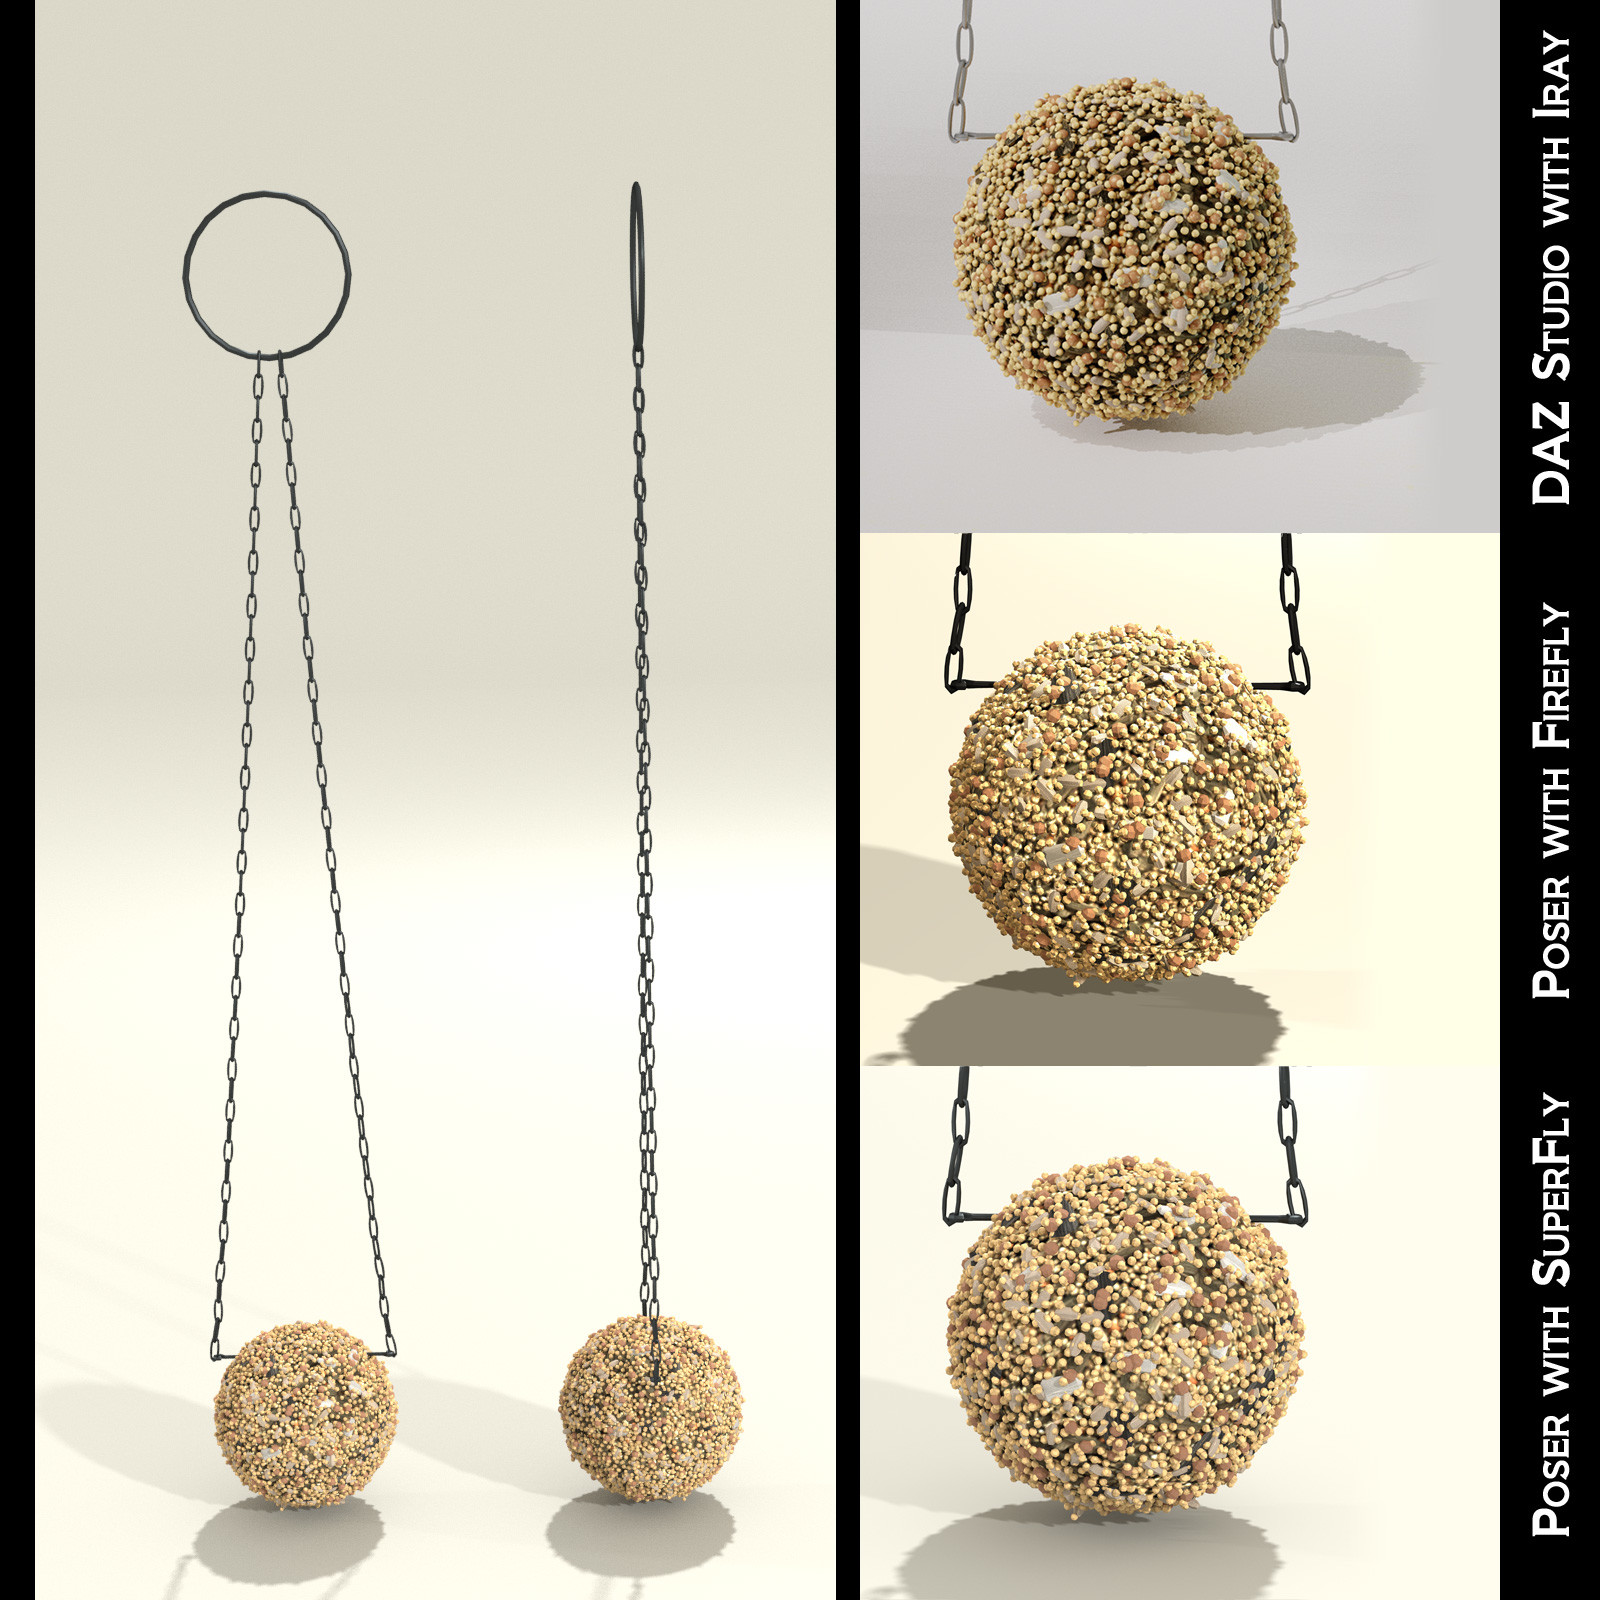 This shows the front and side views of the ball-shaped seed cakes, along with closeup examples of how it looks inside each render engine.